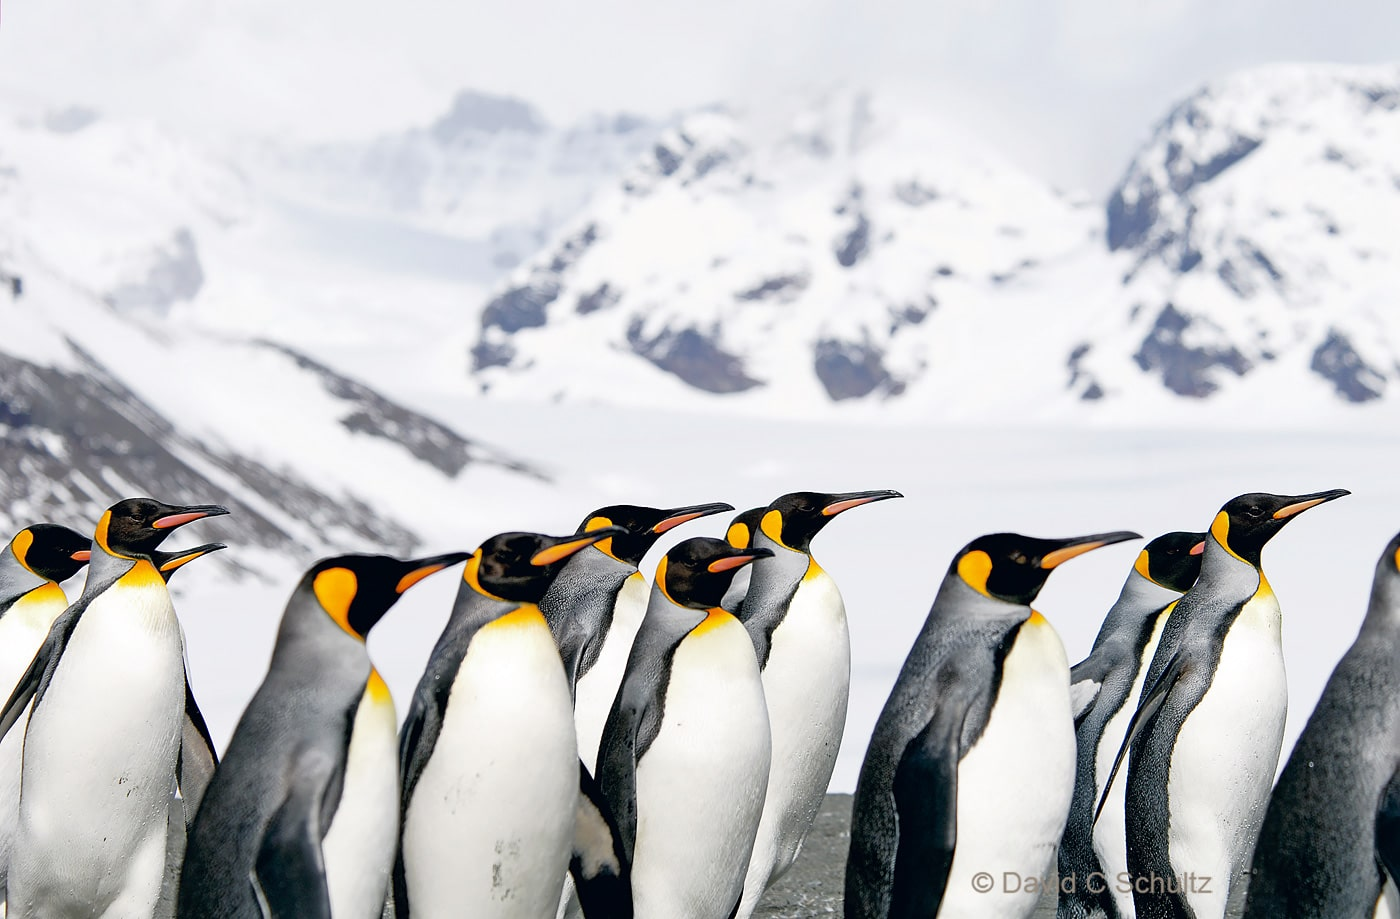 King penguins on South Georgia Island - Image #163-371